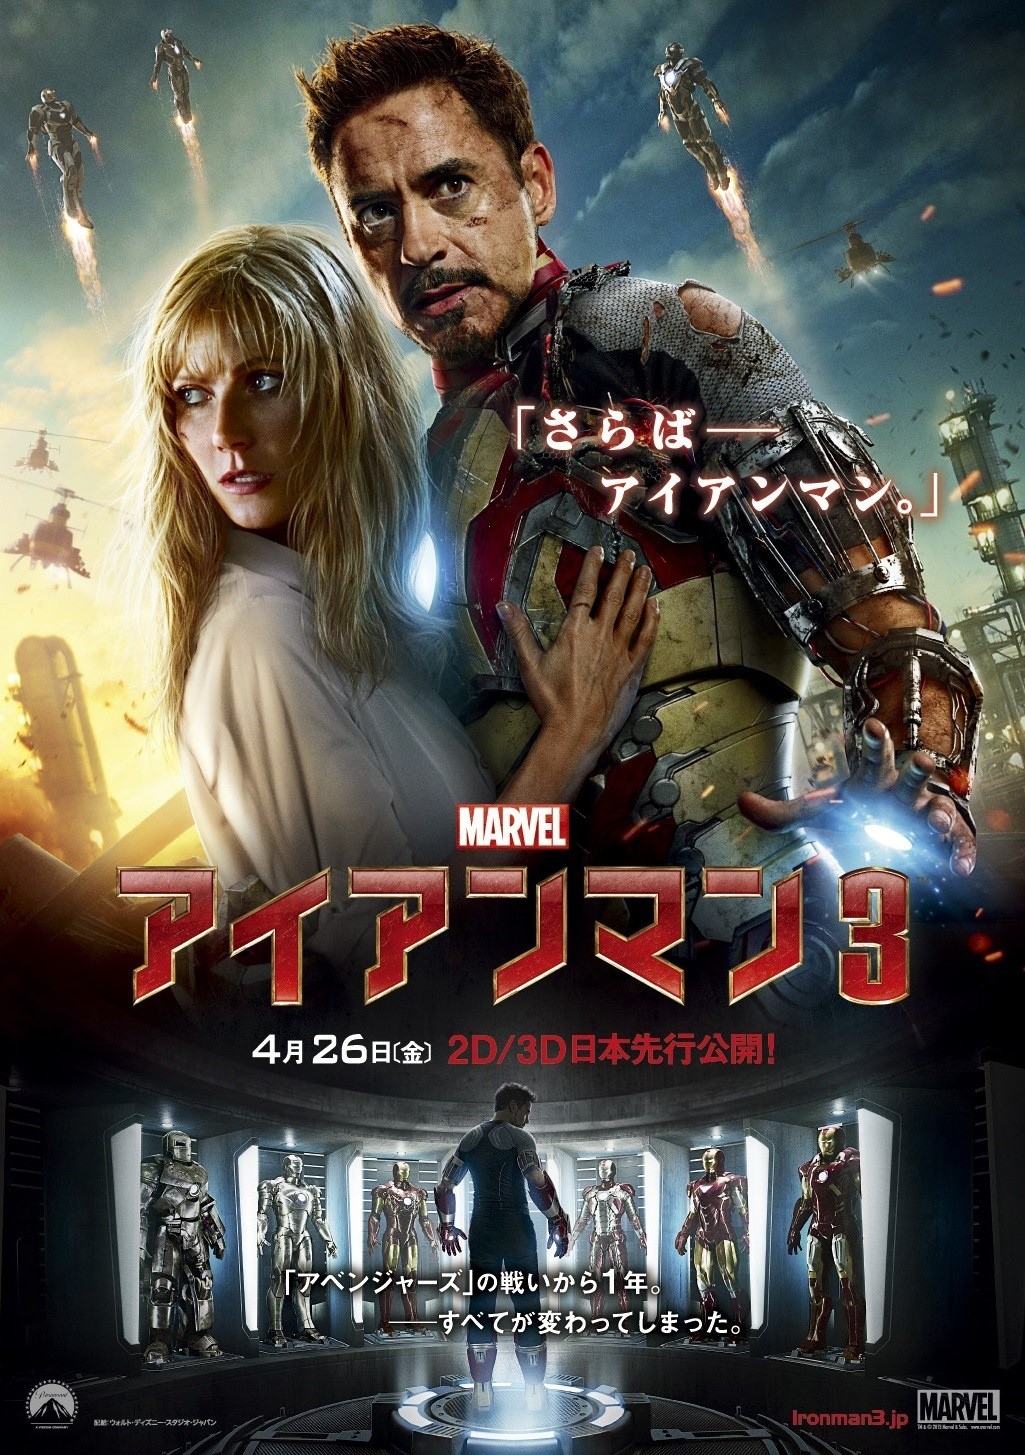 Iron Man 3 | Teaser Trailer